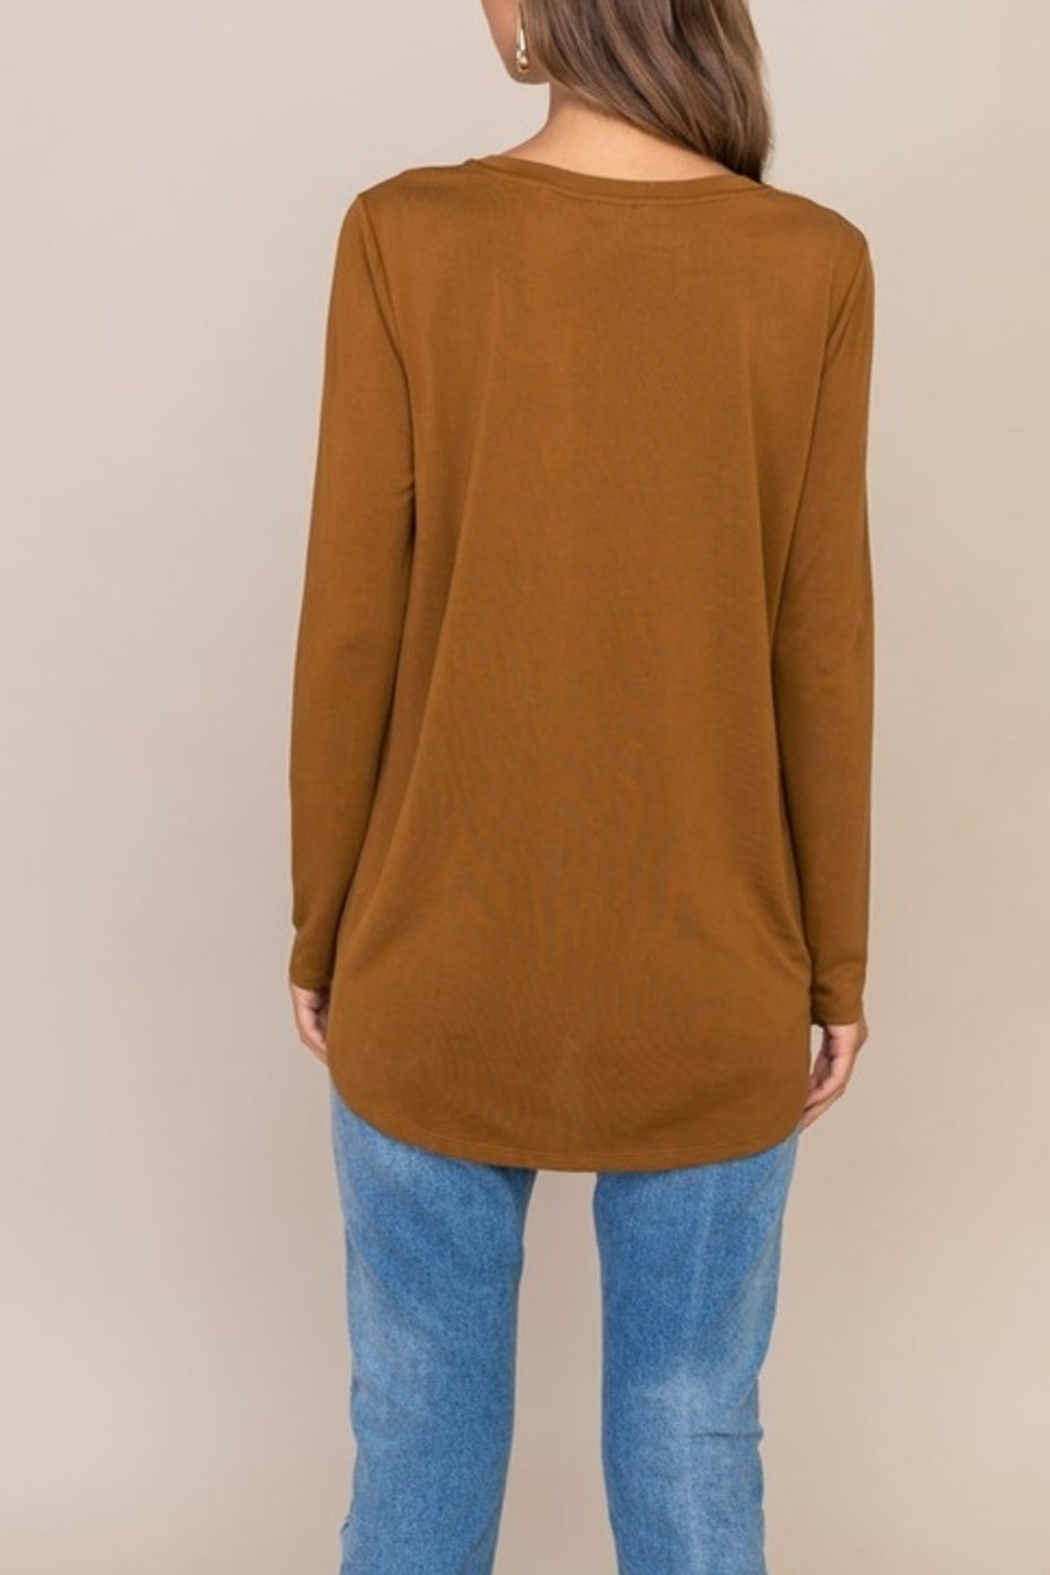 Lush Keep it Simple top - Front Full Image